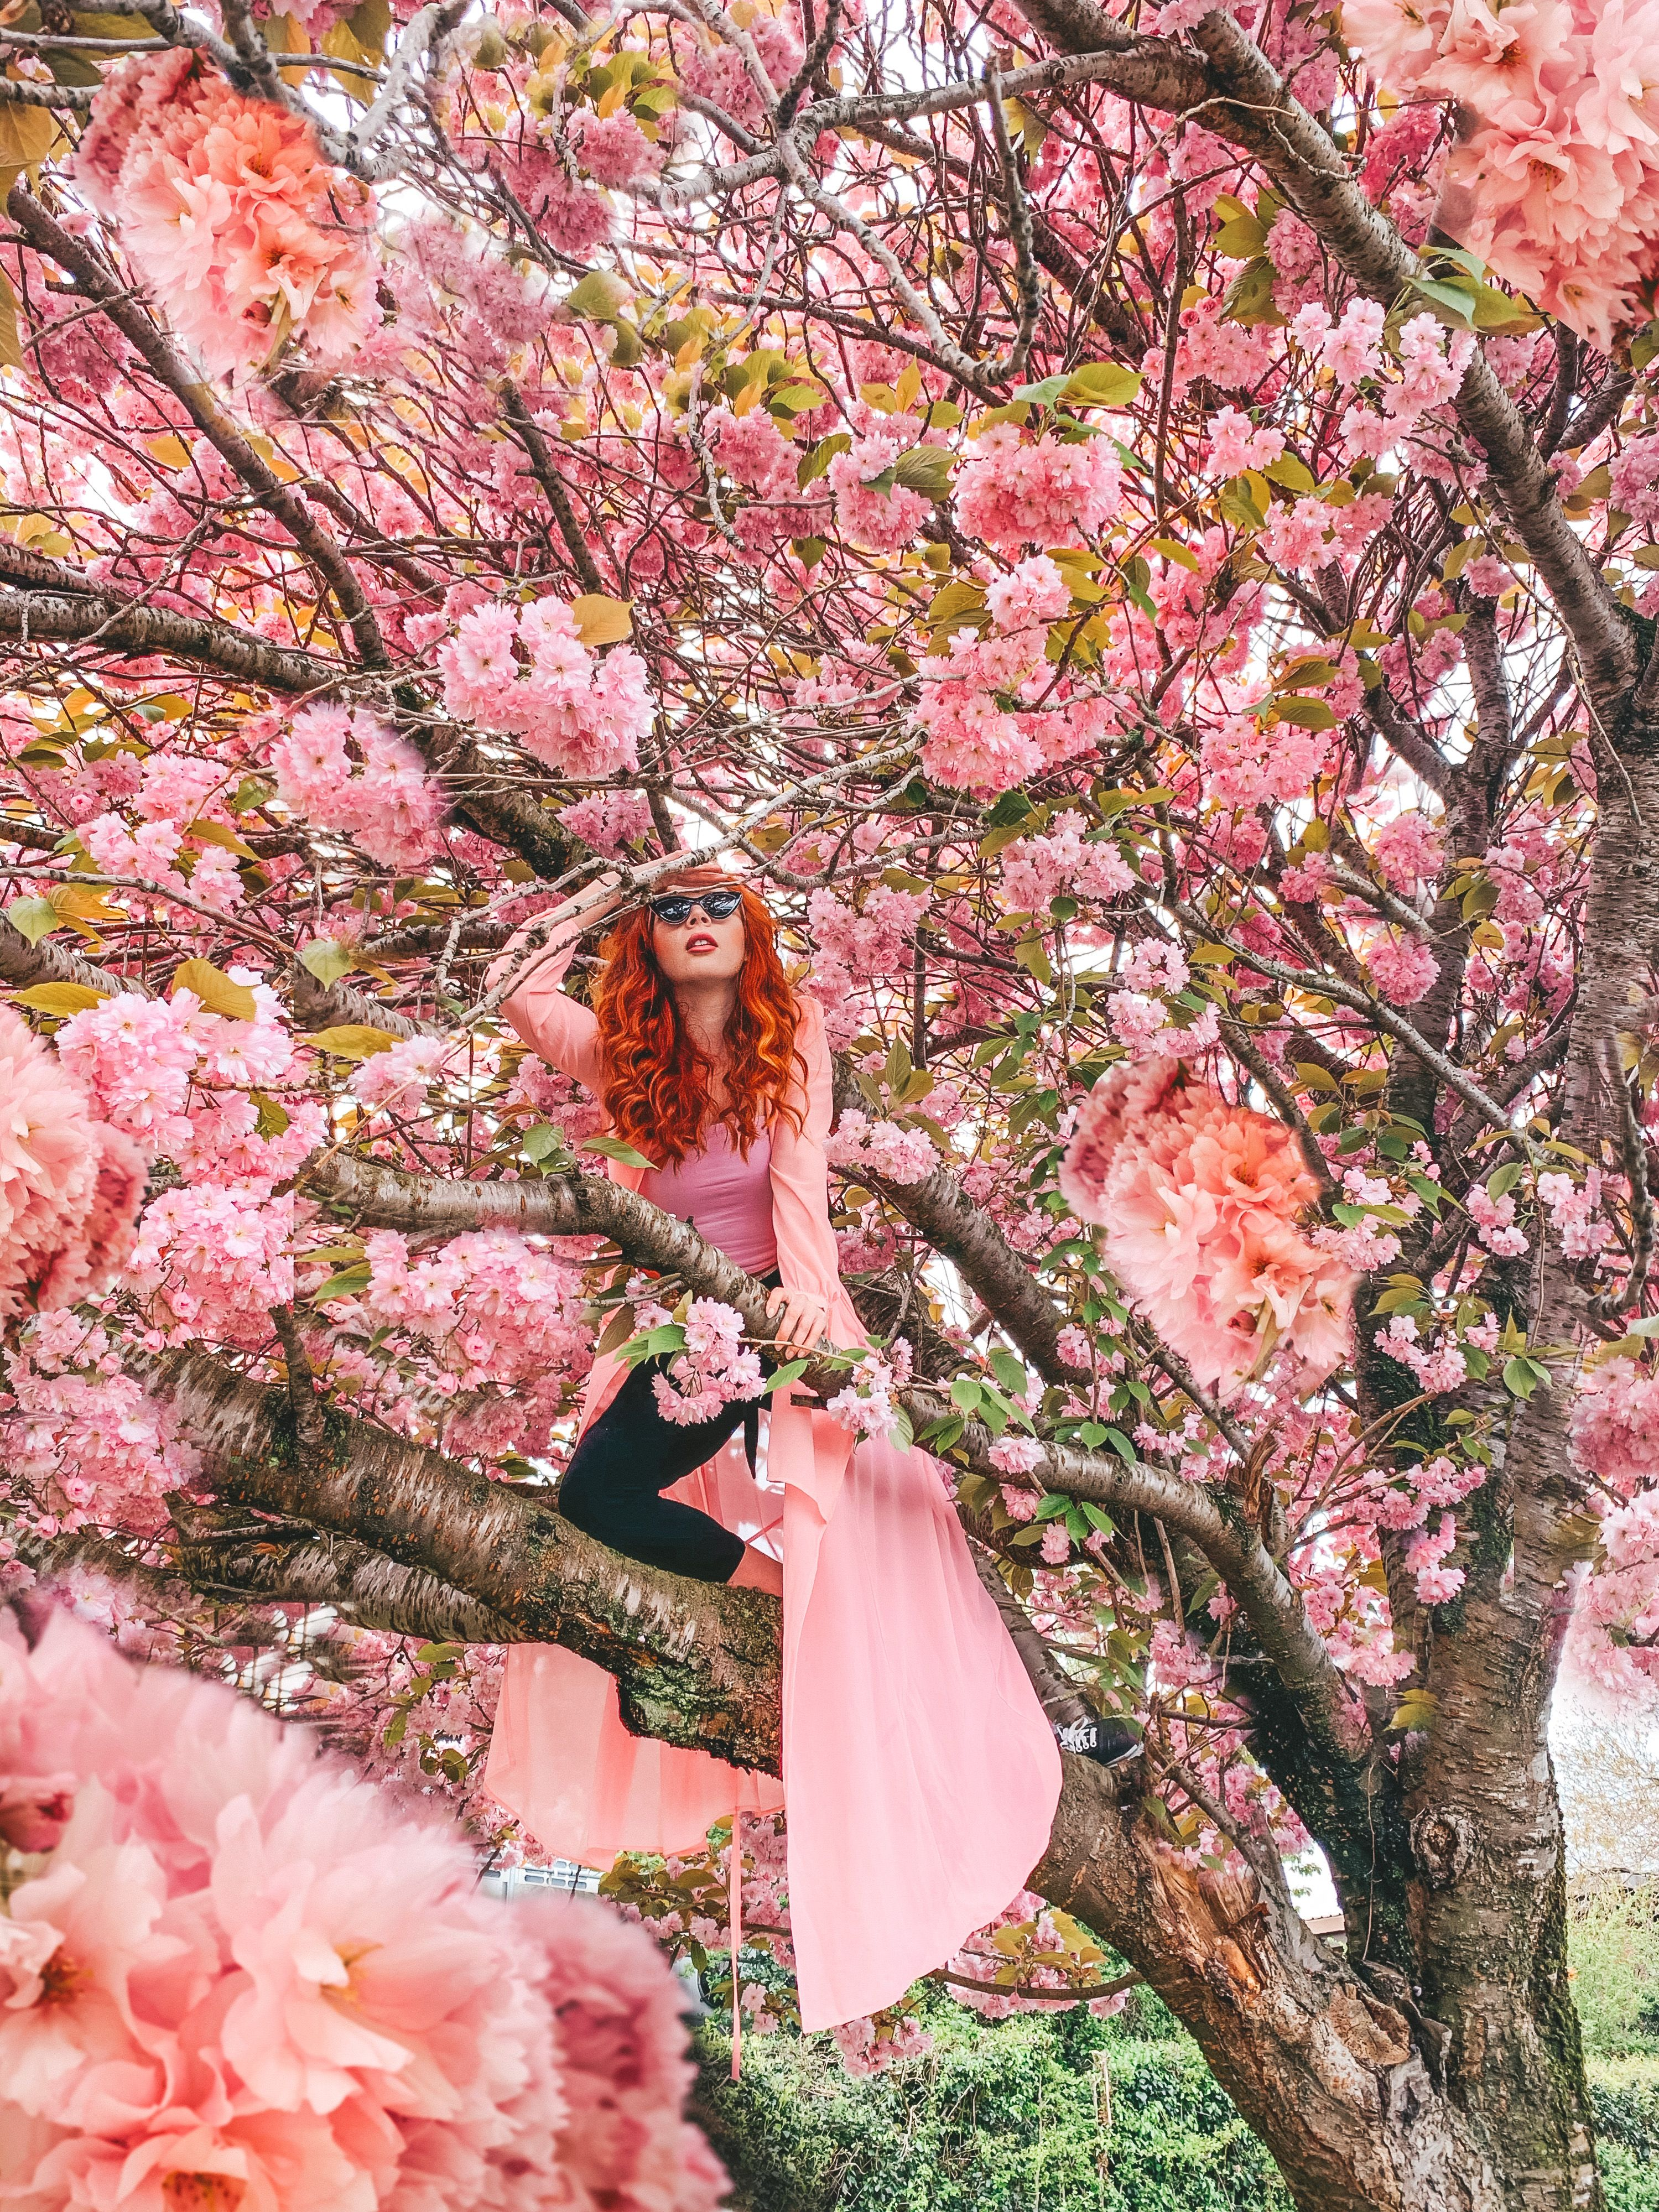 Picture On Cherry Blossom Tree Photo Shoot Photography Creative Posing By Foxywanderer Instagram Photography Instagram Photo